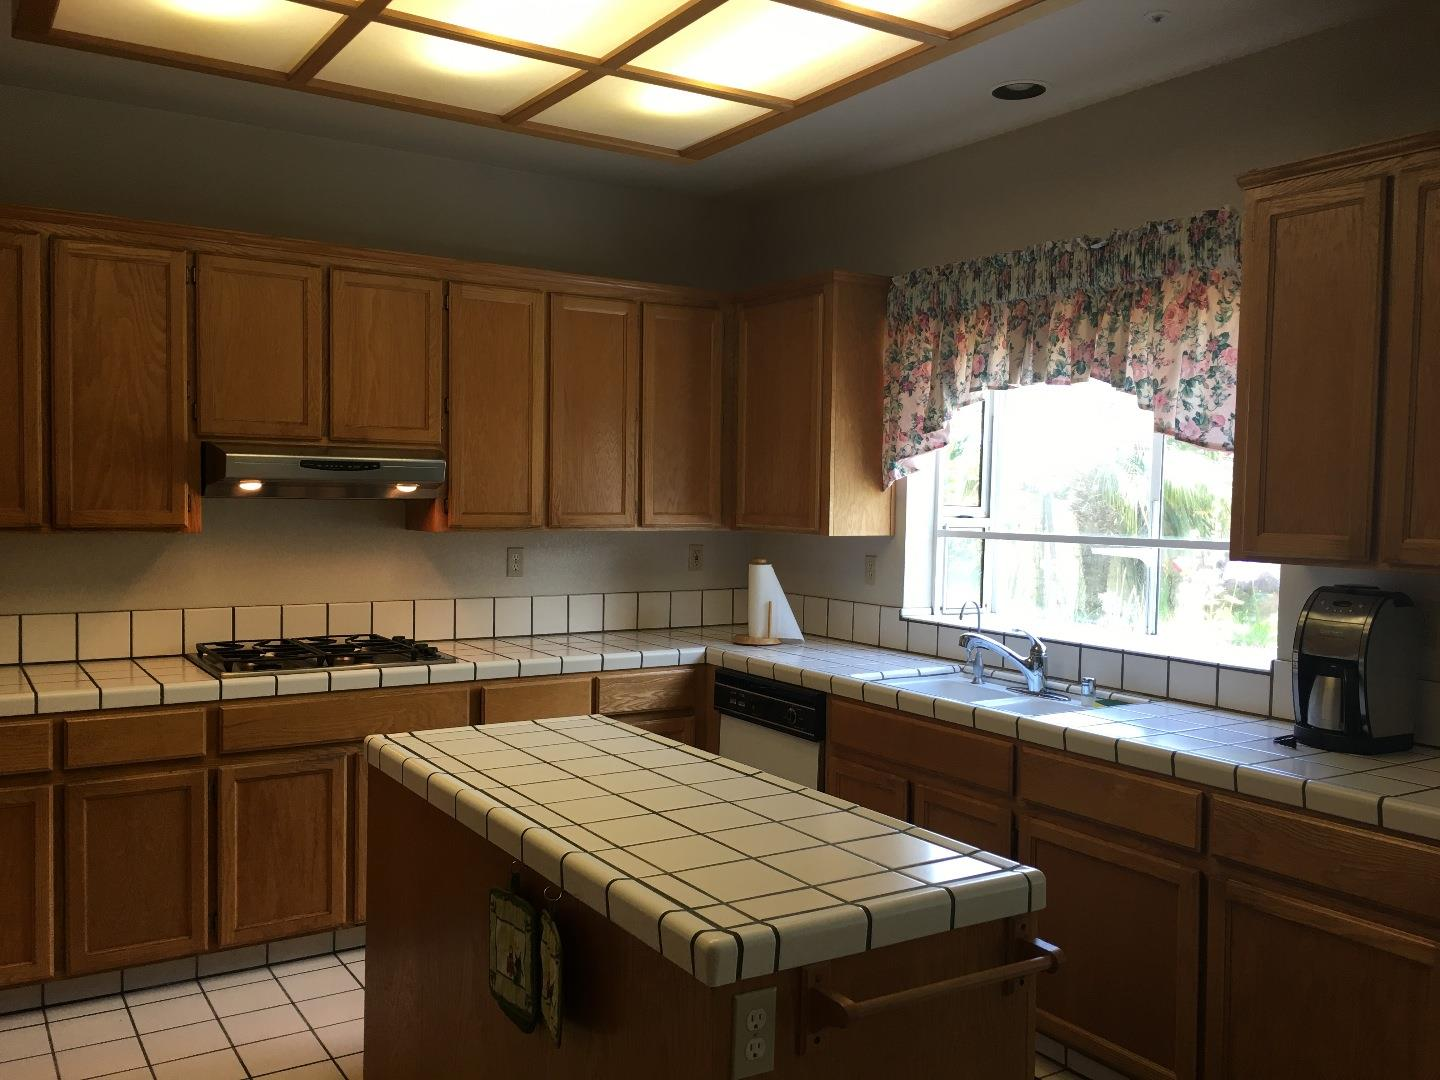 Additional photo for property listing at 1903 Newcastle Drive  Salinas, California 93906 United States